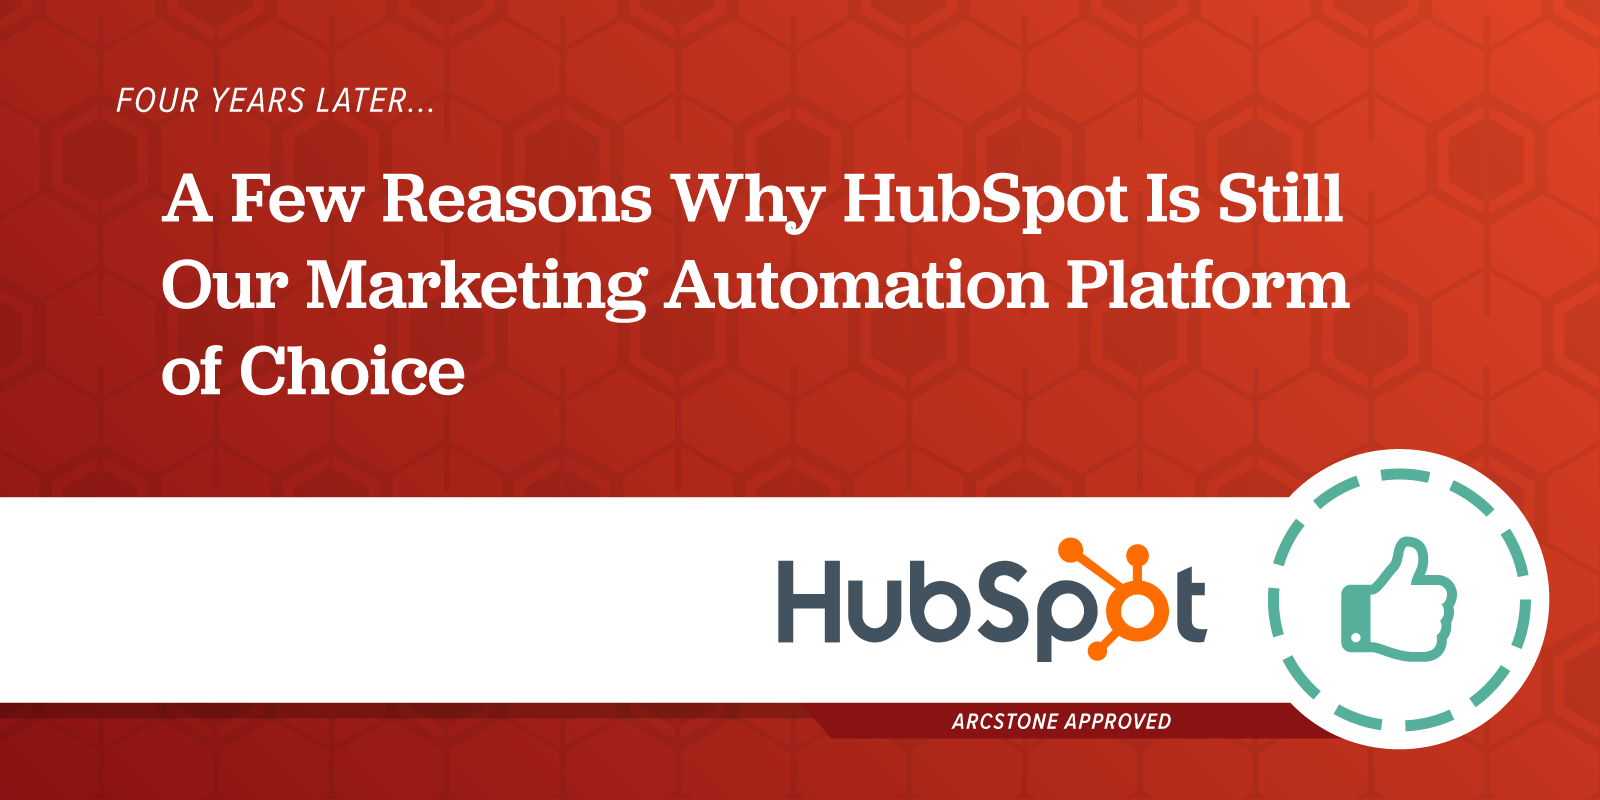 Four years later, a few reasons why HubSpot is still our marketing automation platform of choice